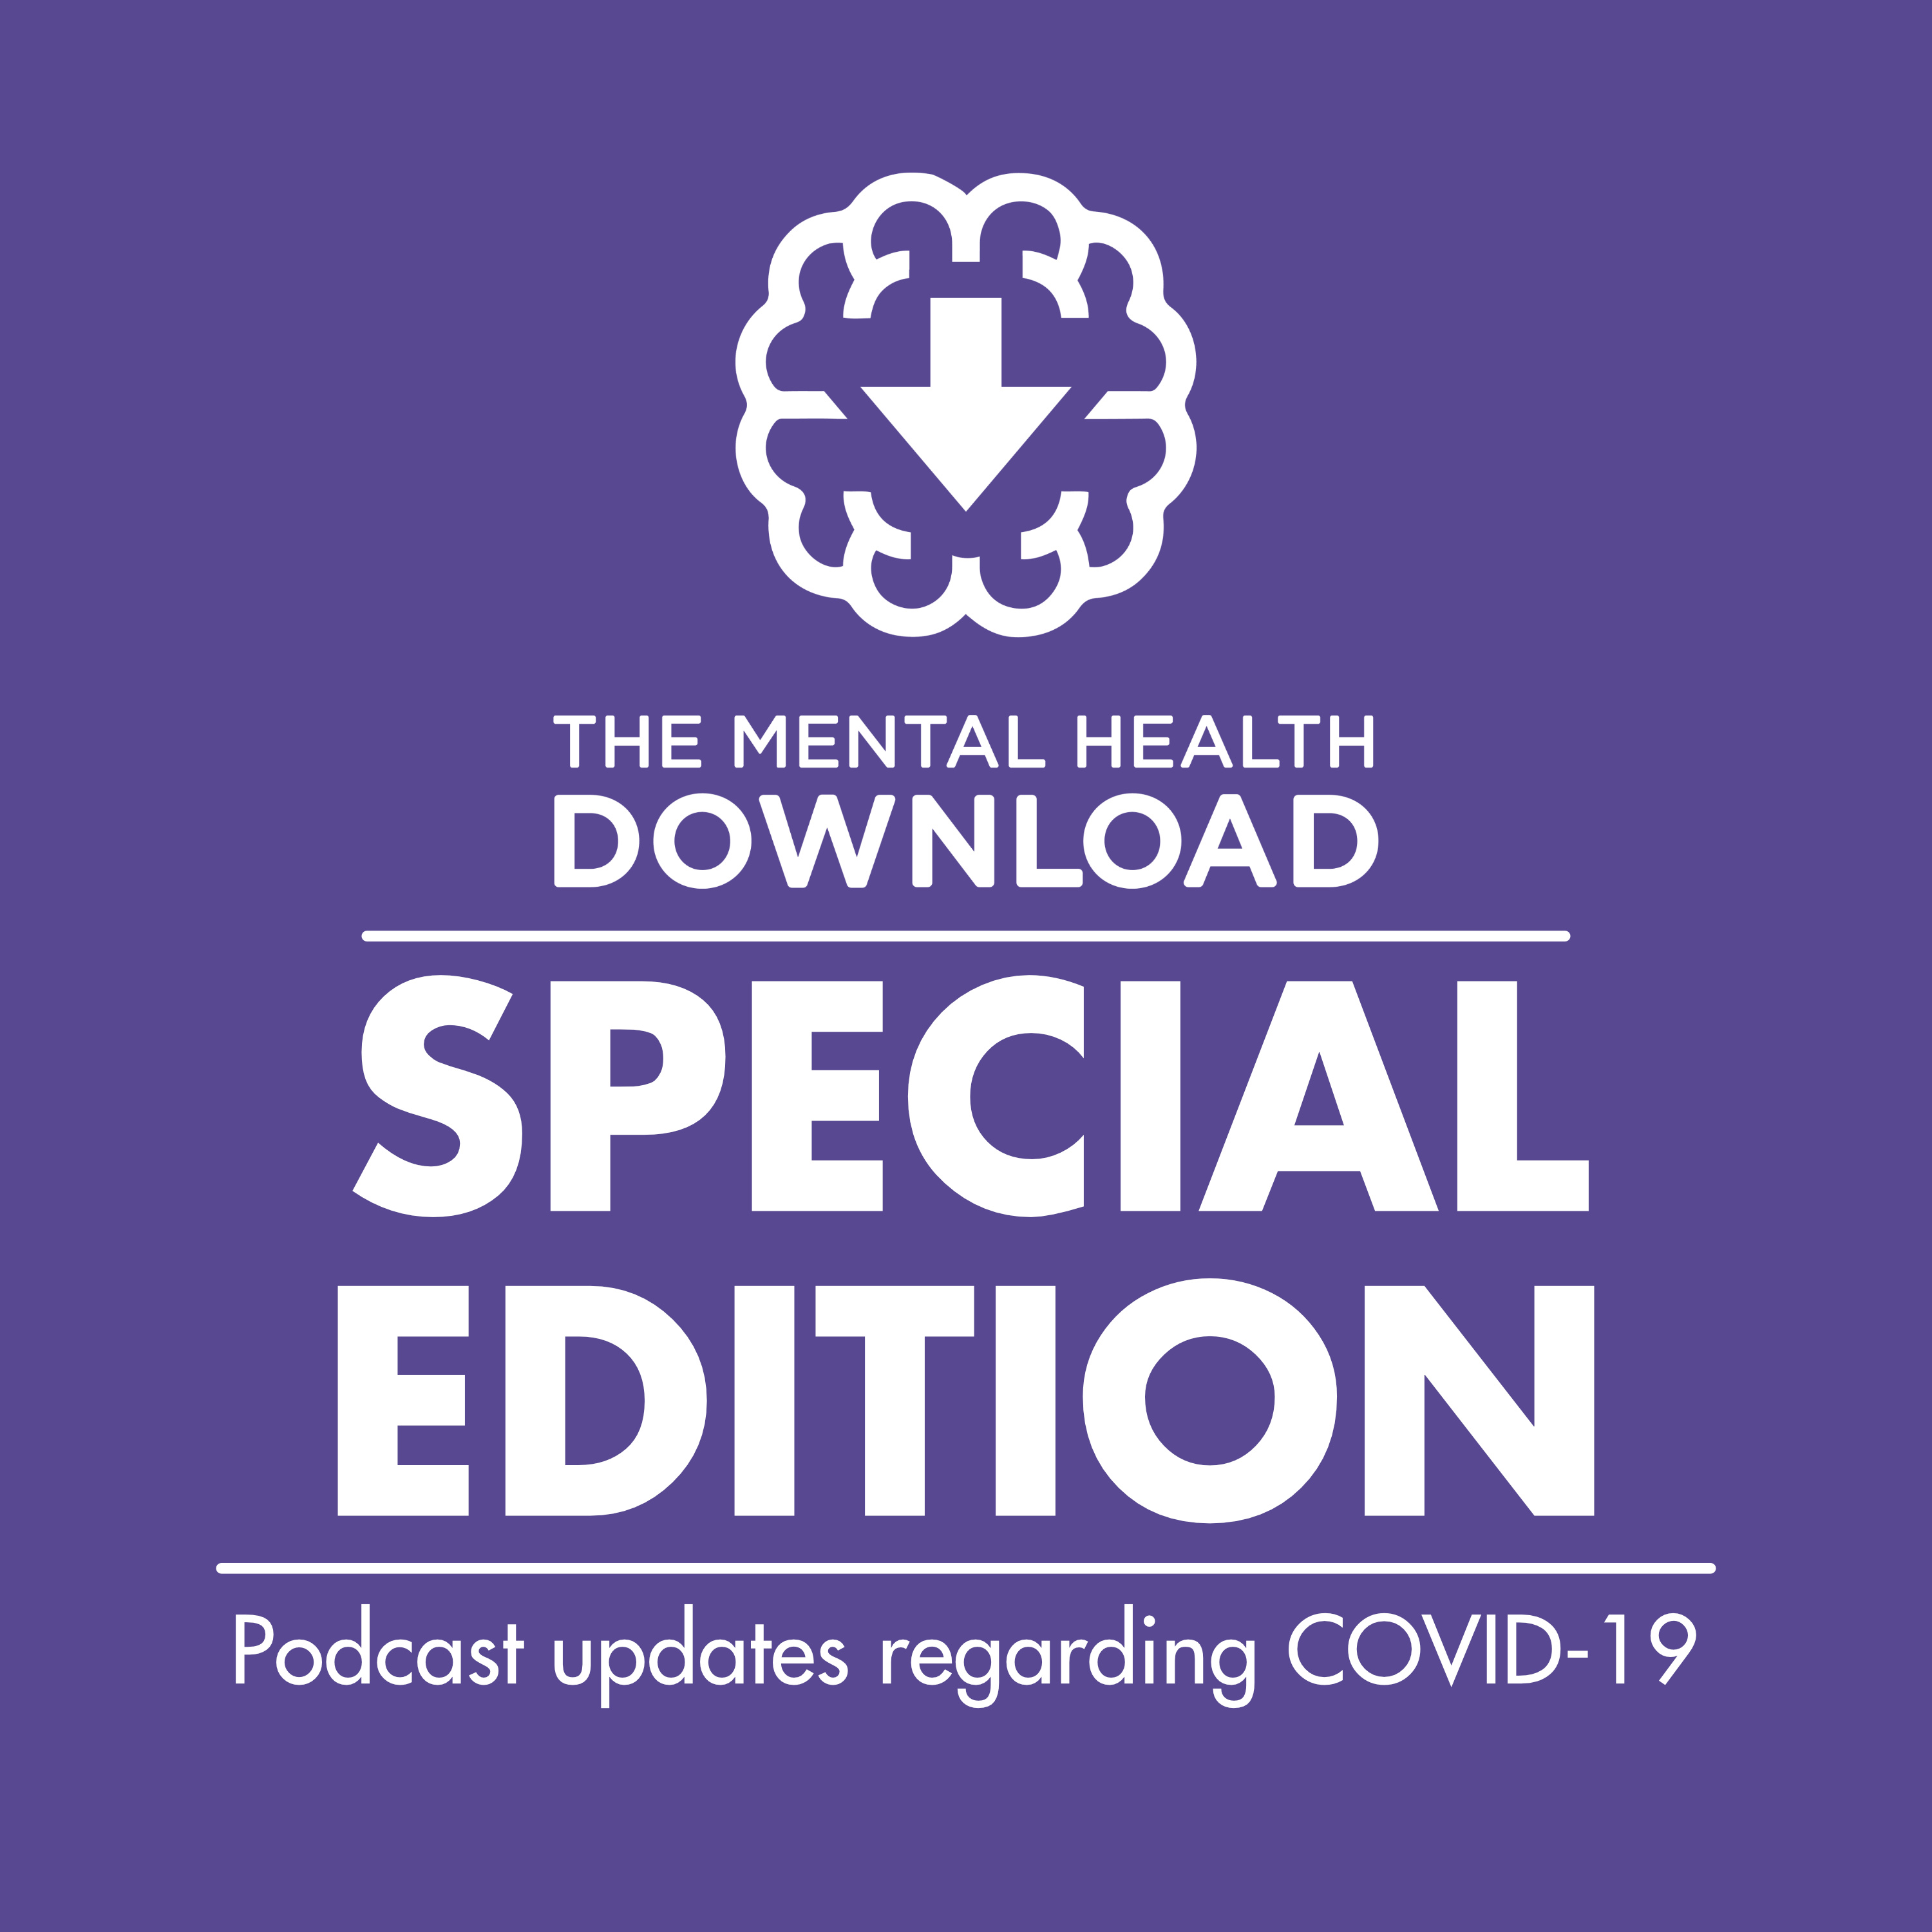 Mental Health Download: Exploring Mental Illness, Suicide, Homelessness and Incarceration - NEW COVID-19 Virtual Support Groups